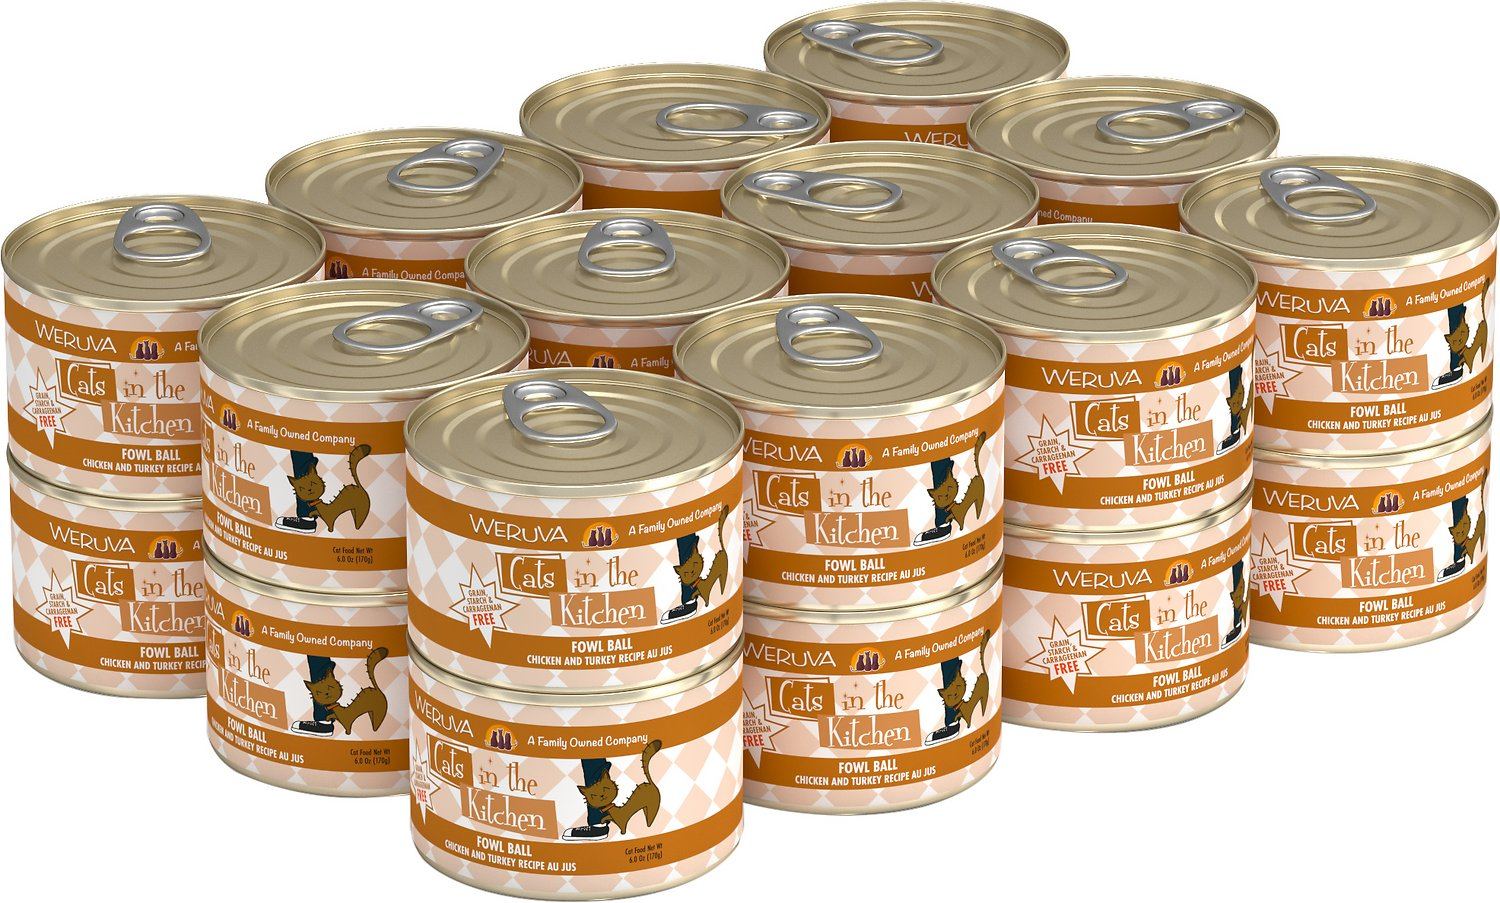 Weruva Cats in the Kitchen Fowl Ball Chicken & Turkey Au Jus Grain-Free Wet Cat Food, 6-oz, case of 24